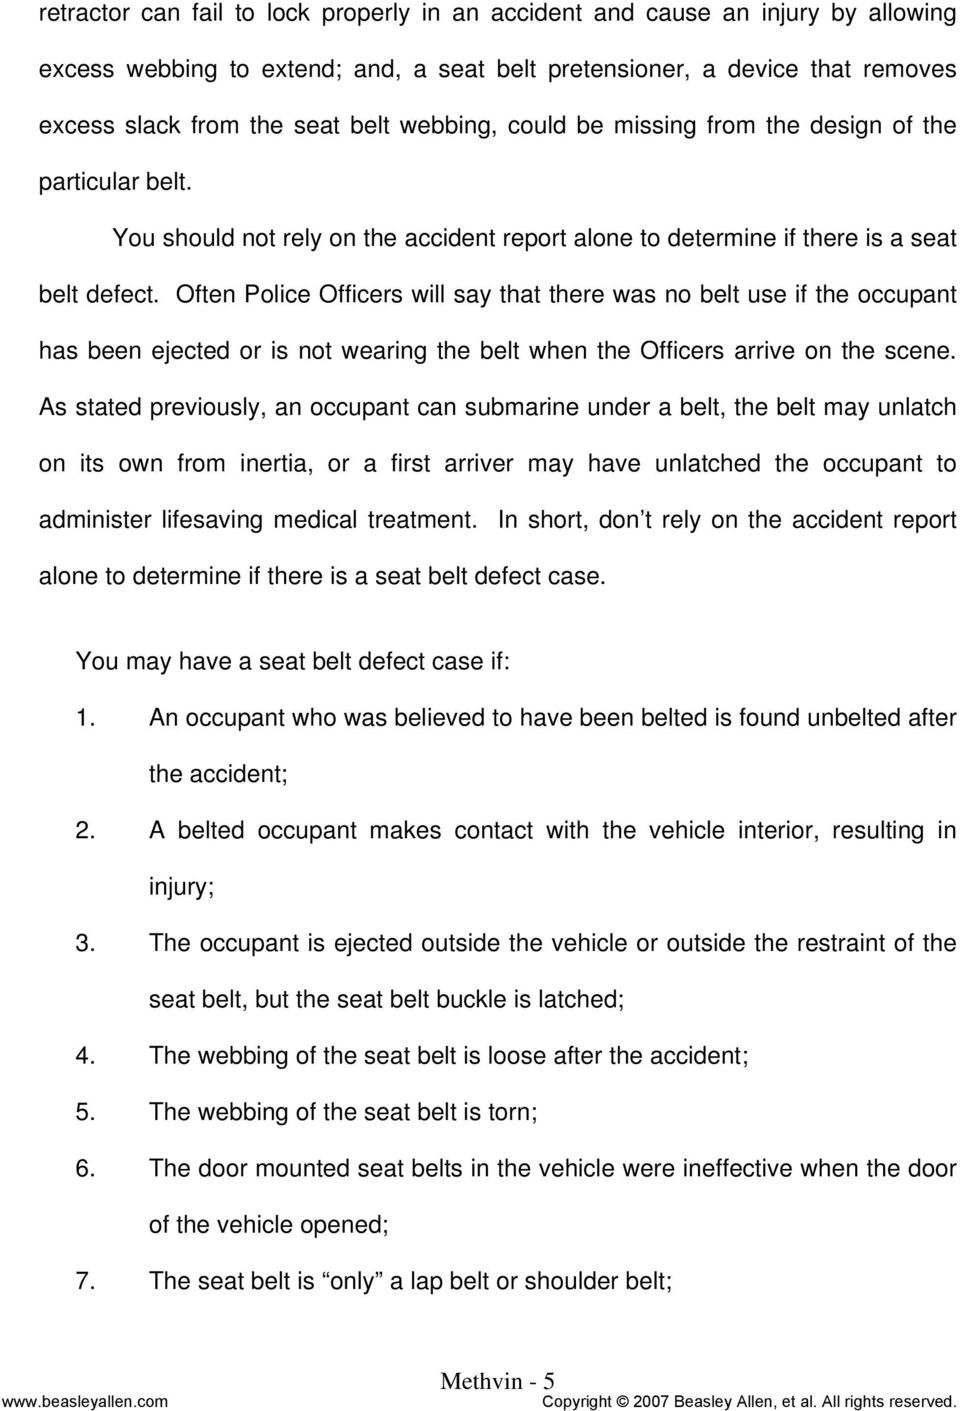 Often Police Officers will say that there was no belt use if the occupant has been ejected or is not wearing the belt when the Officers arrive on the scene.